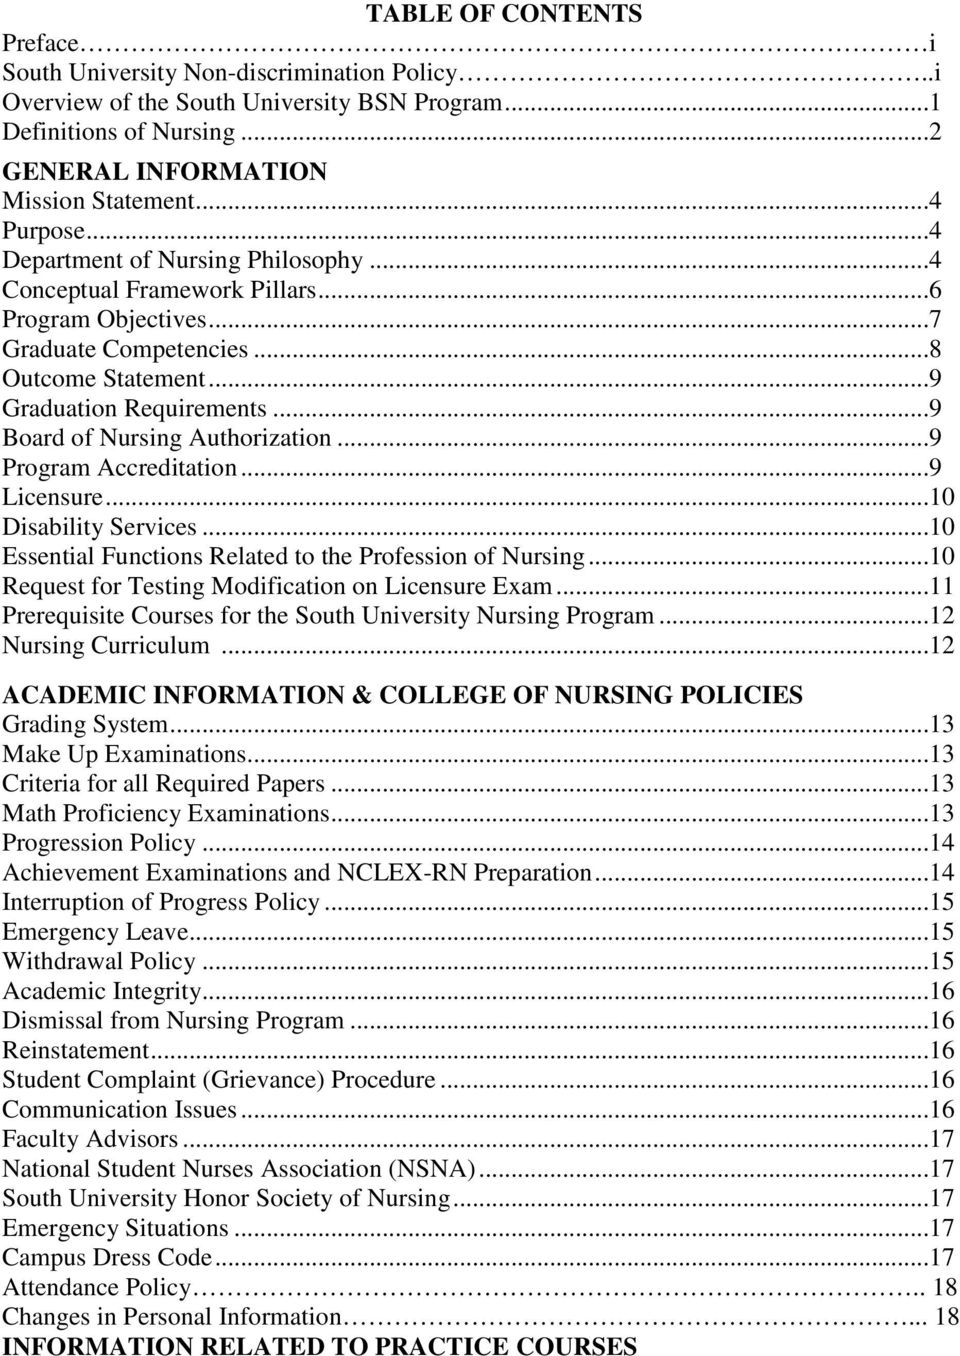 ..9 Board of Nursing Authorization...9 Program Accreditation...9 Licensure...10 Disability Services...10 Essential Functions Related to the Profession of Nursing.